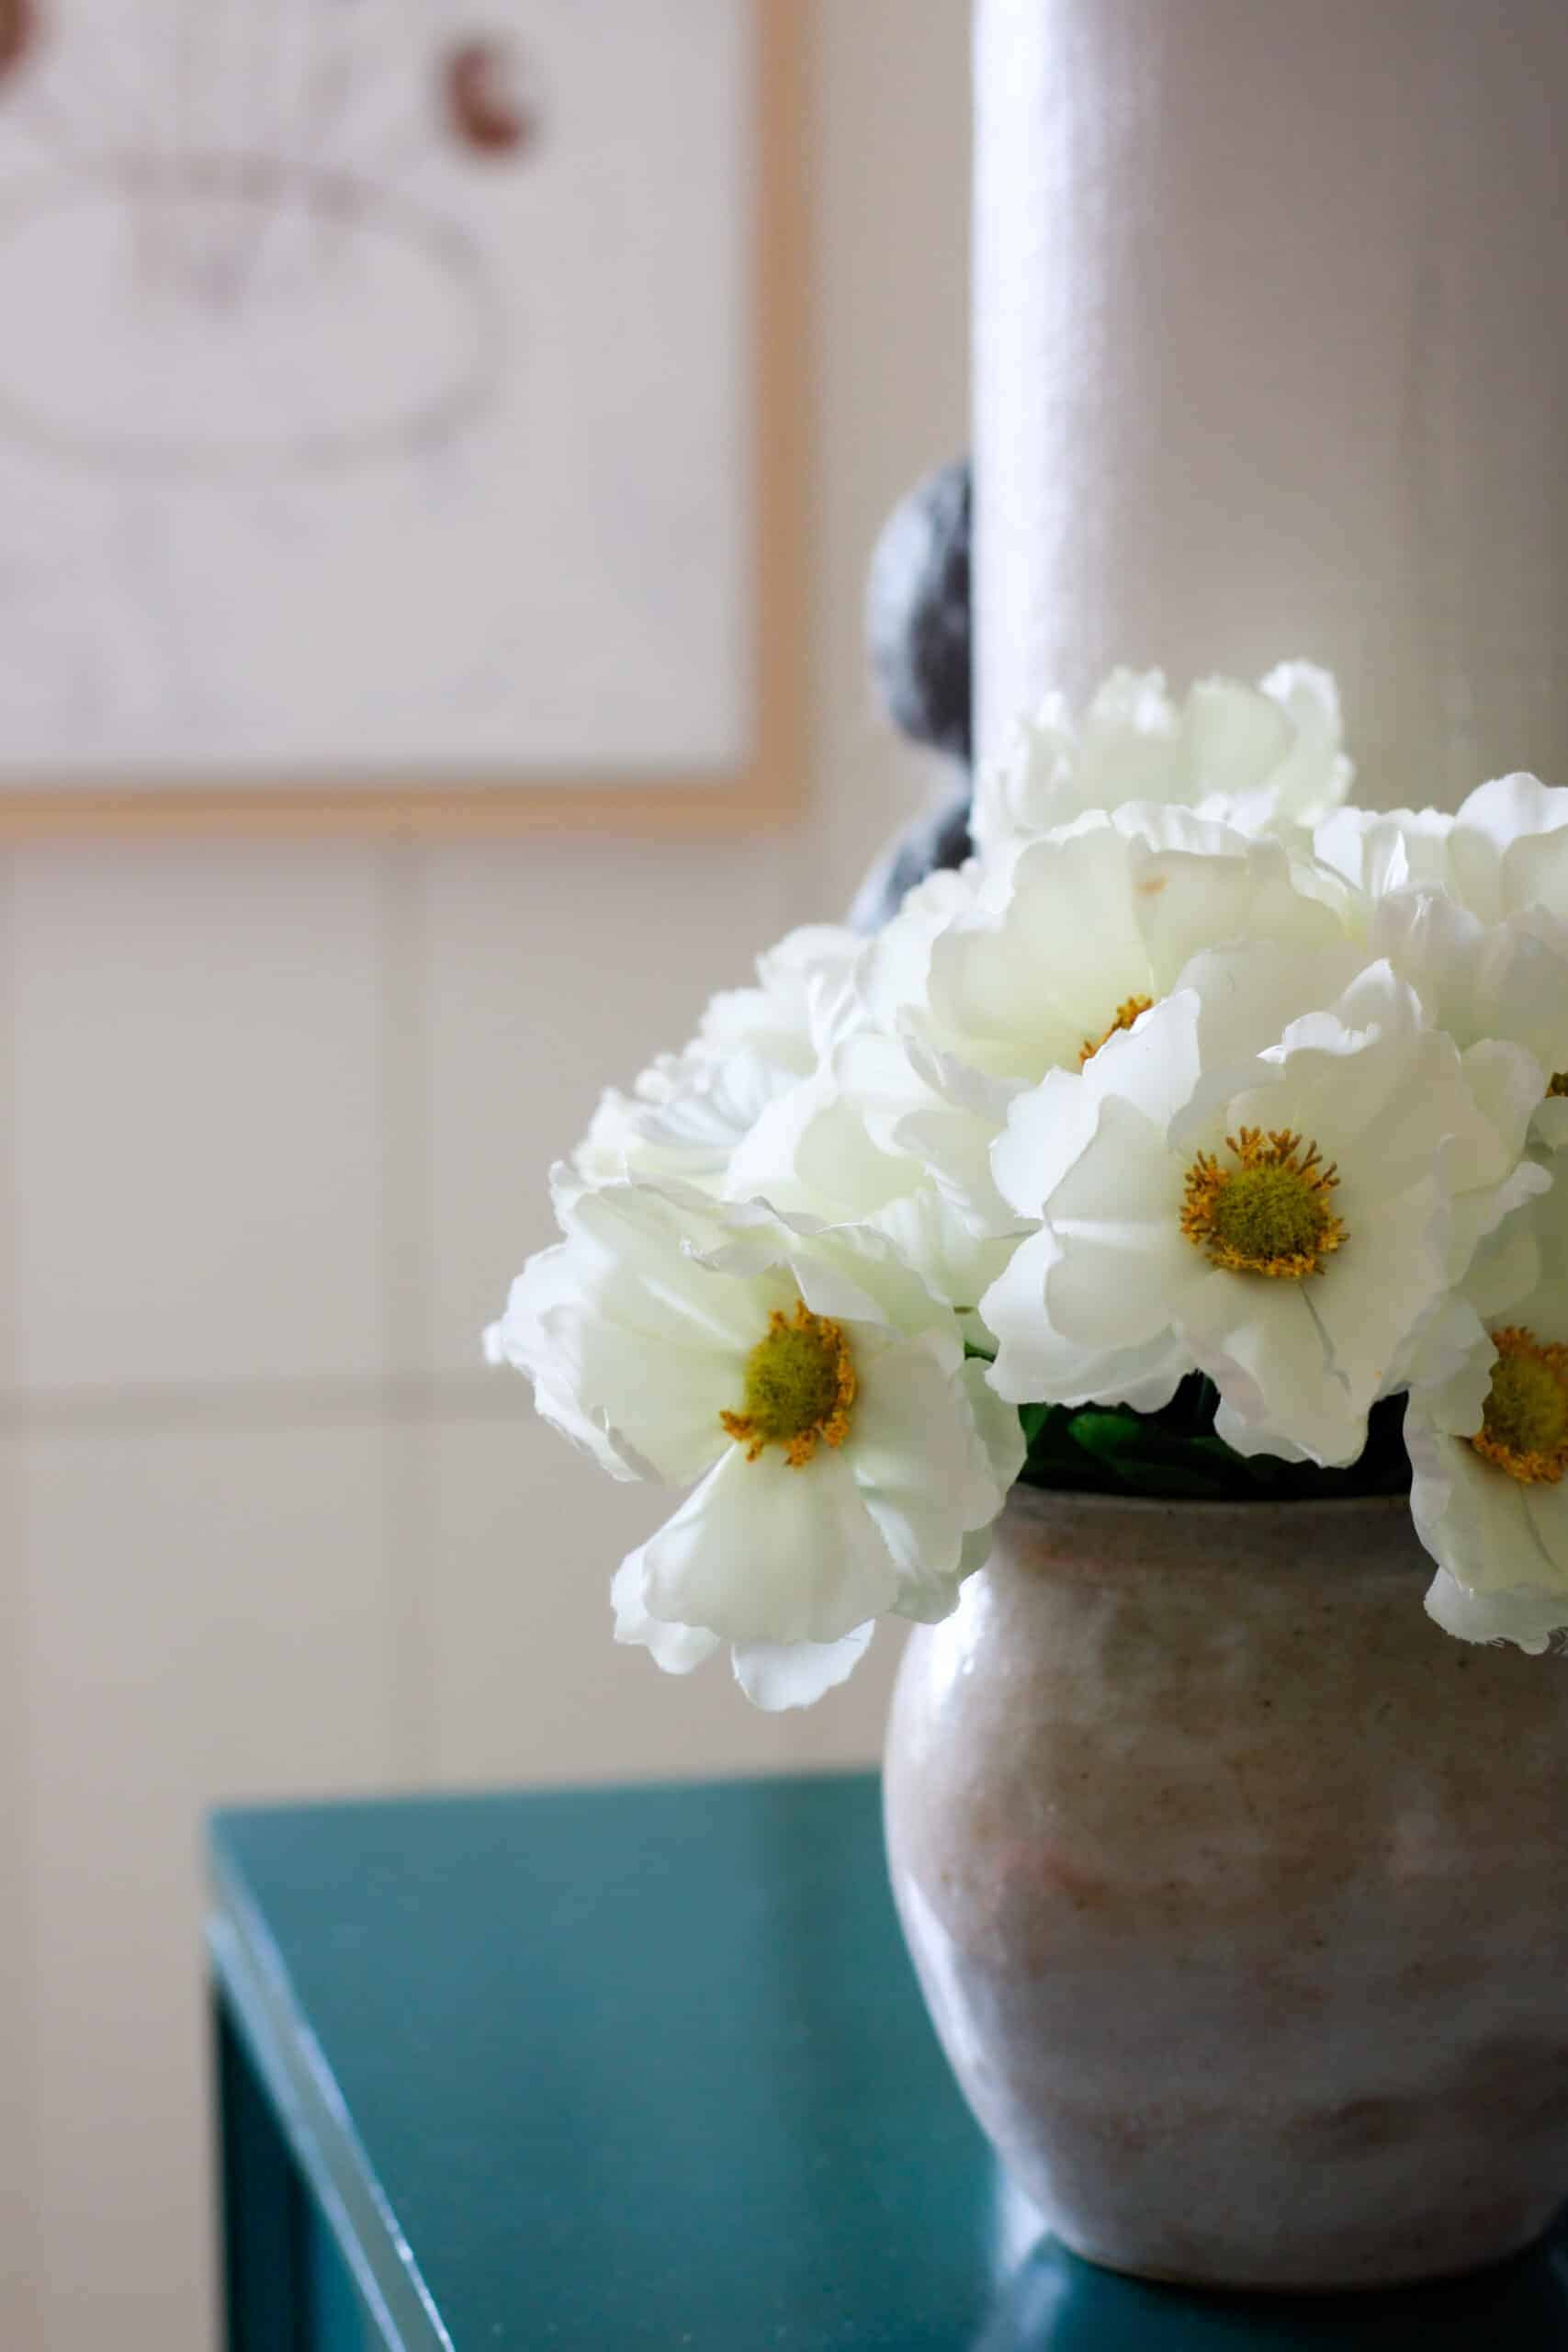 close up of white flowers on green dresser